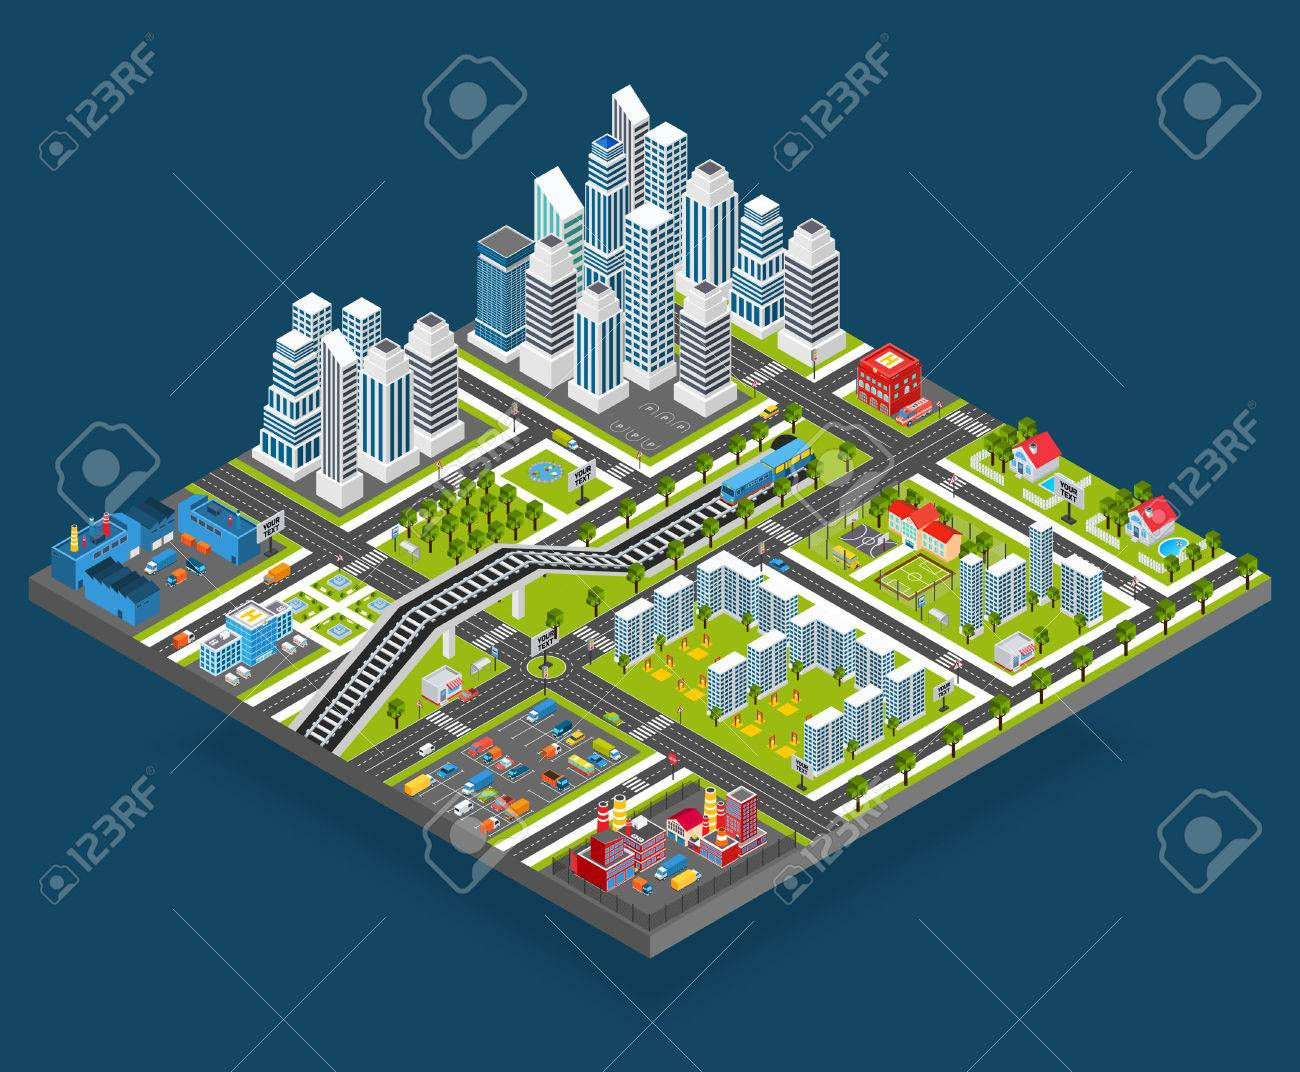 Manufacture Isometric And City Blocks Office Vector Illustration Building Store Houses 3d With